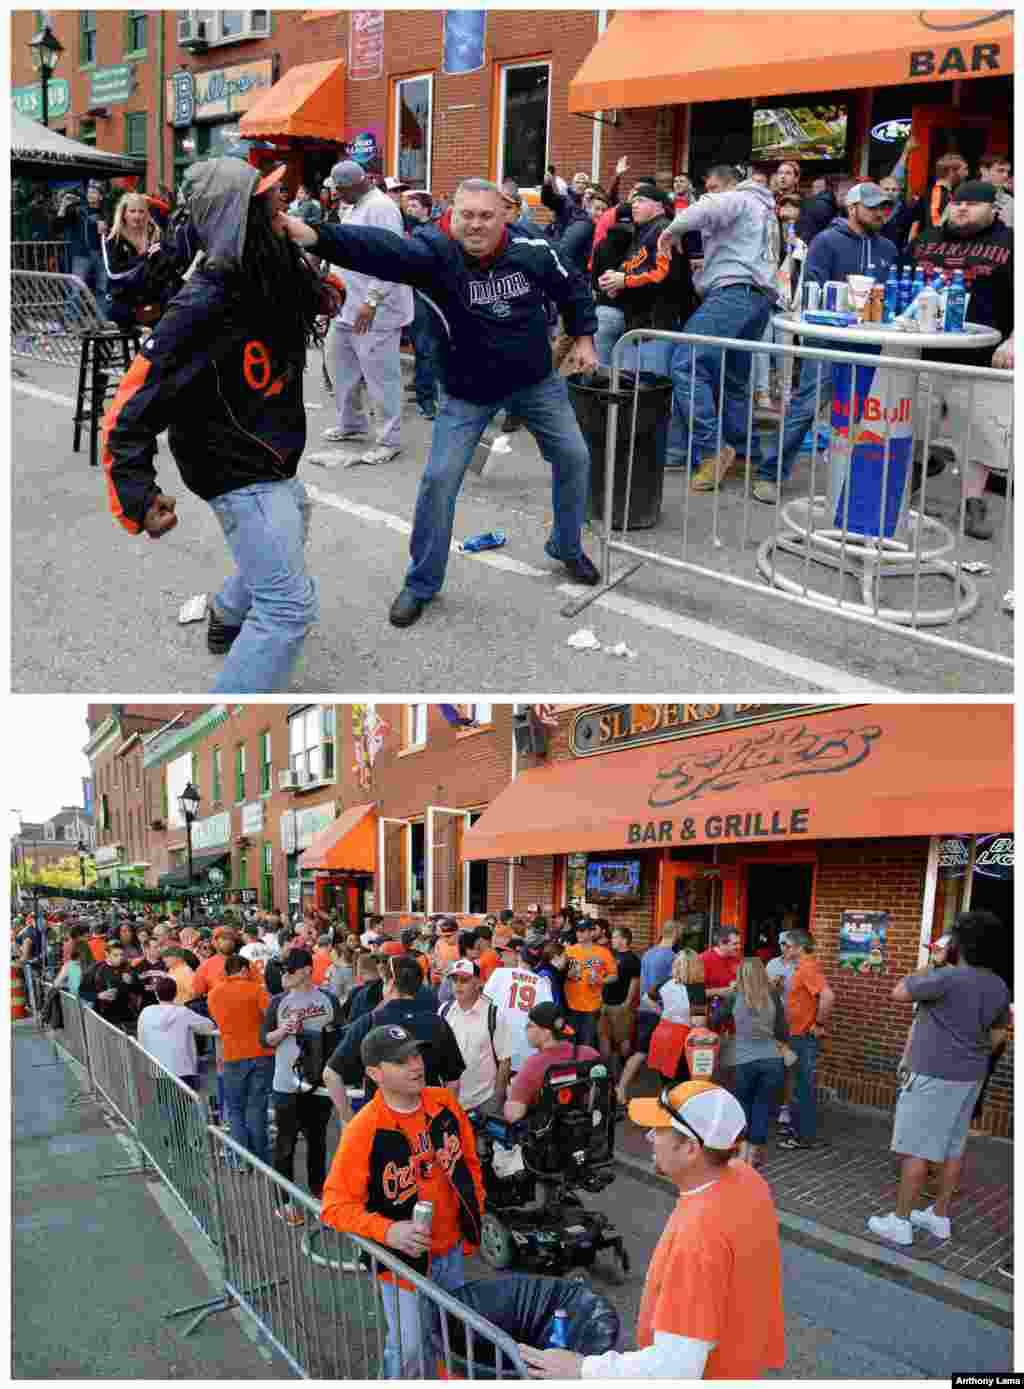 In the photo at top, a protester, left, fights with a bar patron on April 25, 2015 at a bar outside of Oriole Park at Camden Yards. In the bottom photo, bar patrons congregate at the same on April 19, 2016, in Baltimore.